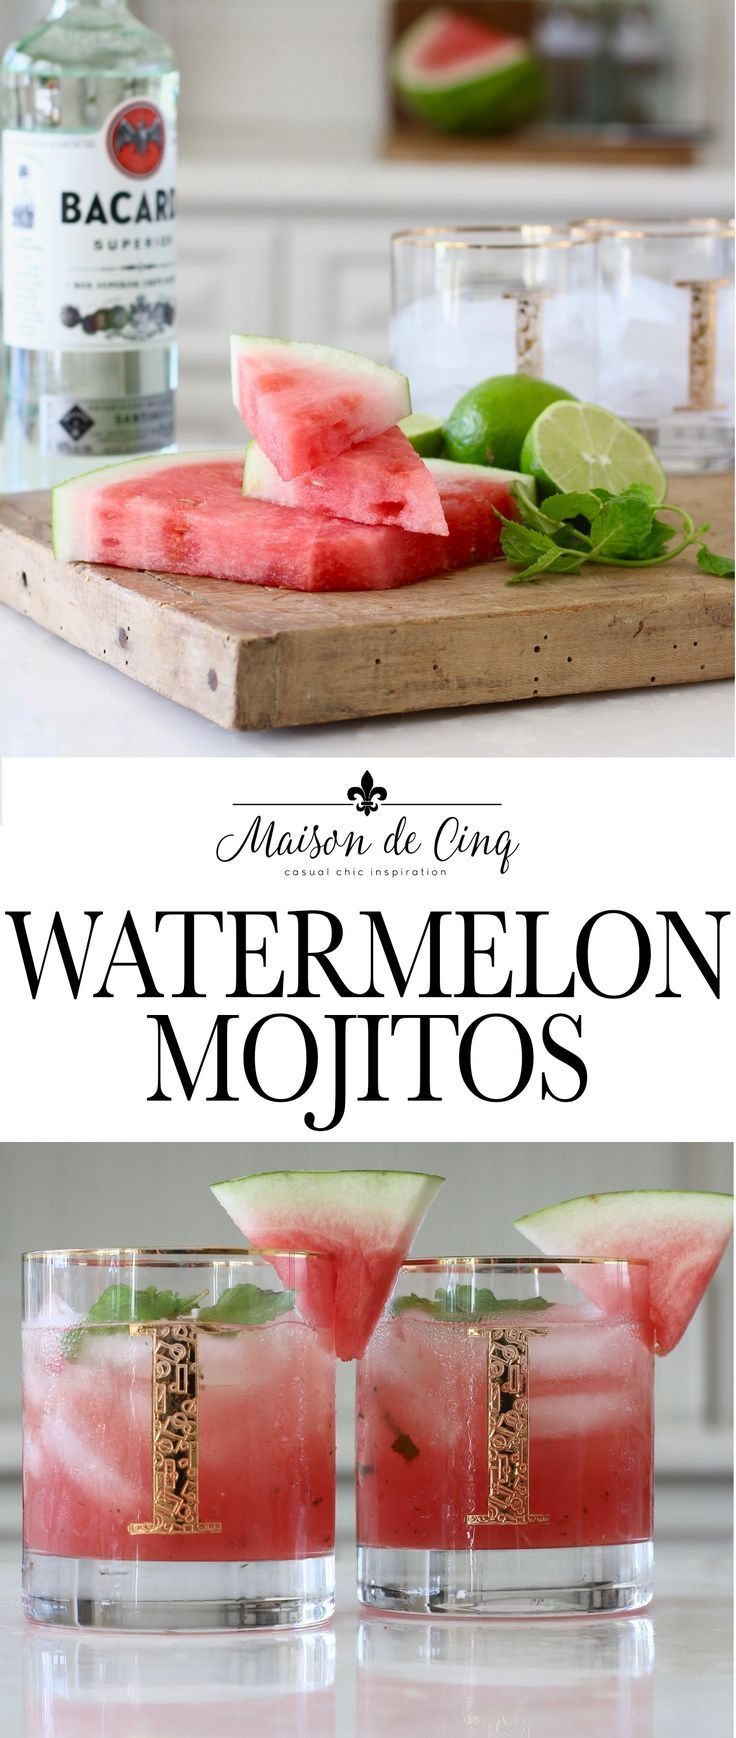 Watermelon Mojito Recipe - The Perfect Summer Cocktail! Delicious Watermelon Mojitos - perfect for summer! Absolutely the BEST mojitos ever!--->#maisondecinq